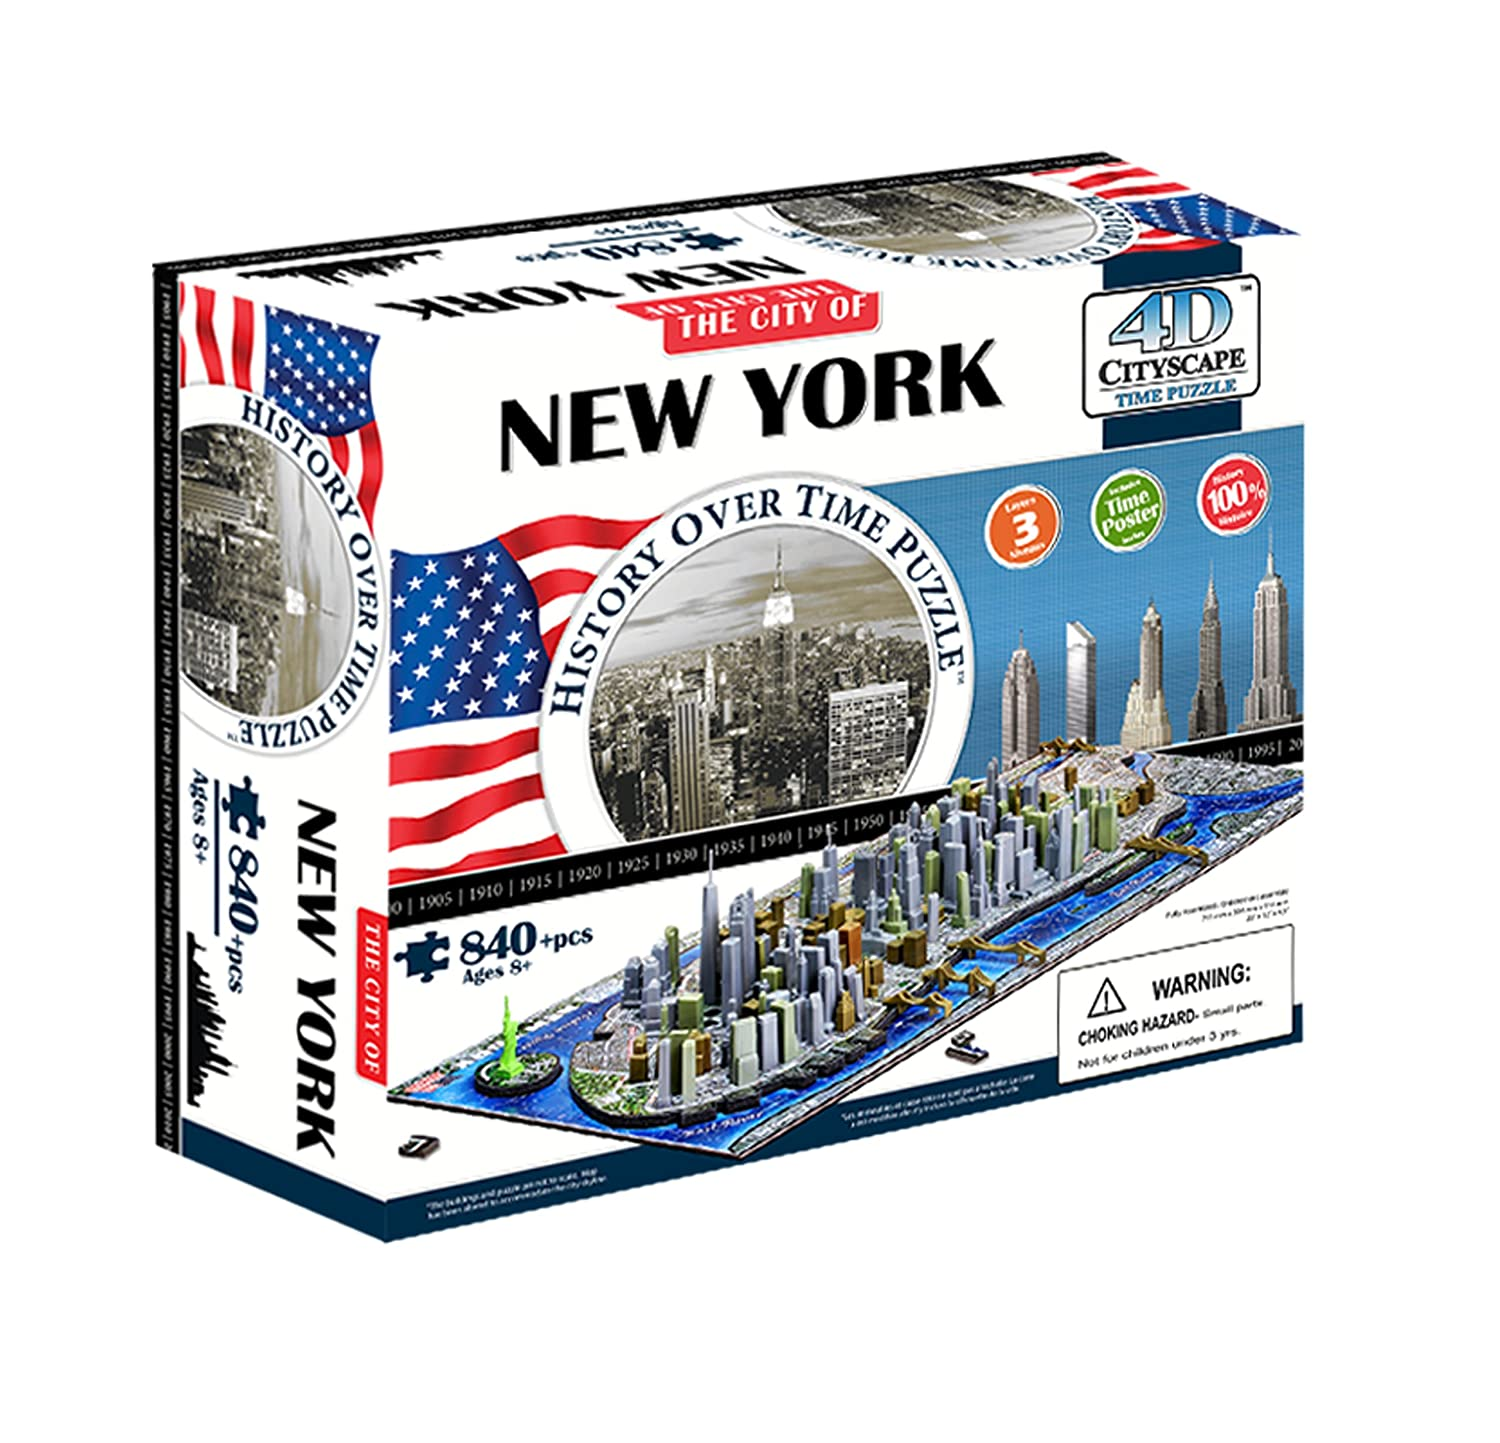 4D Cityscape New York City Skyline Time Puzzle 4D Cityscape Inc CTY-4D101 Puzzles